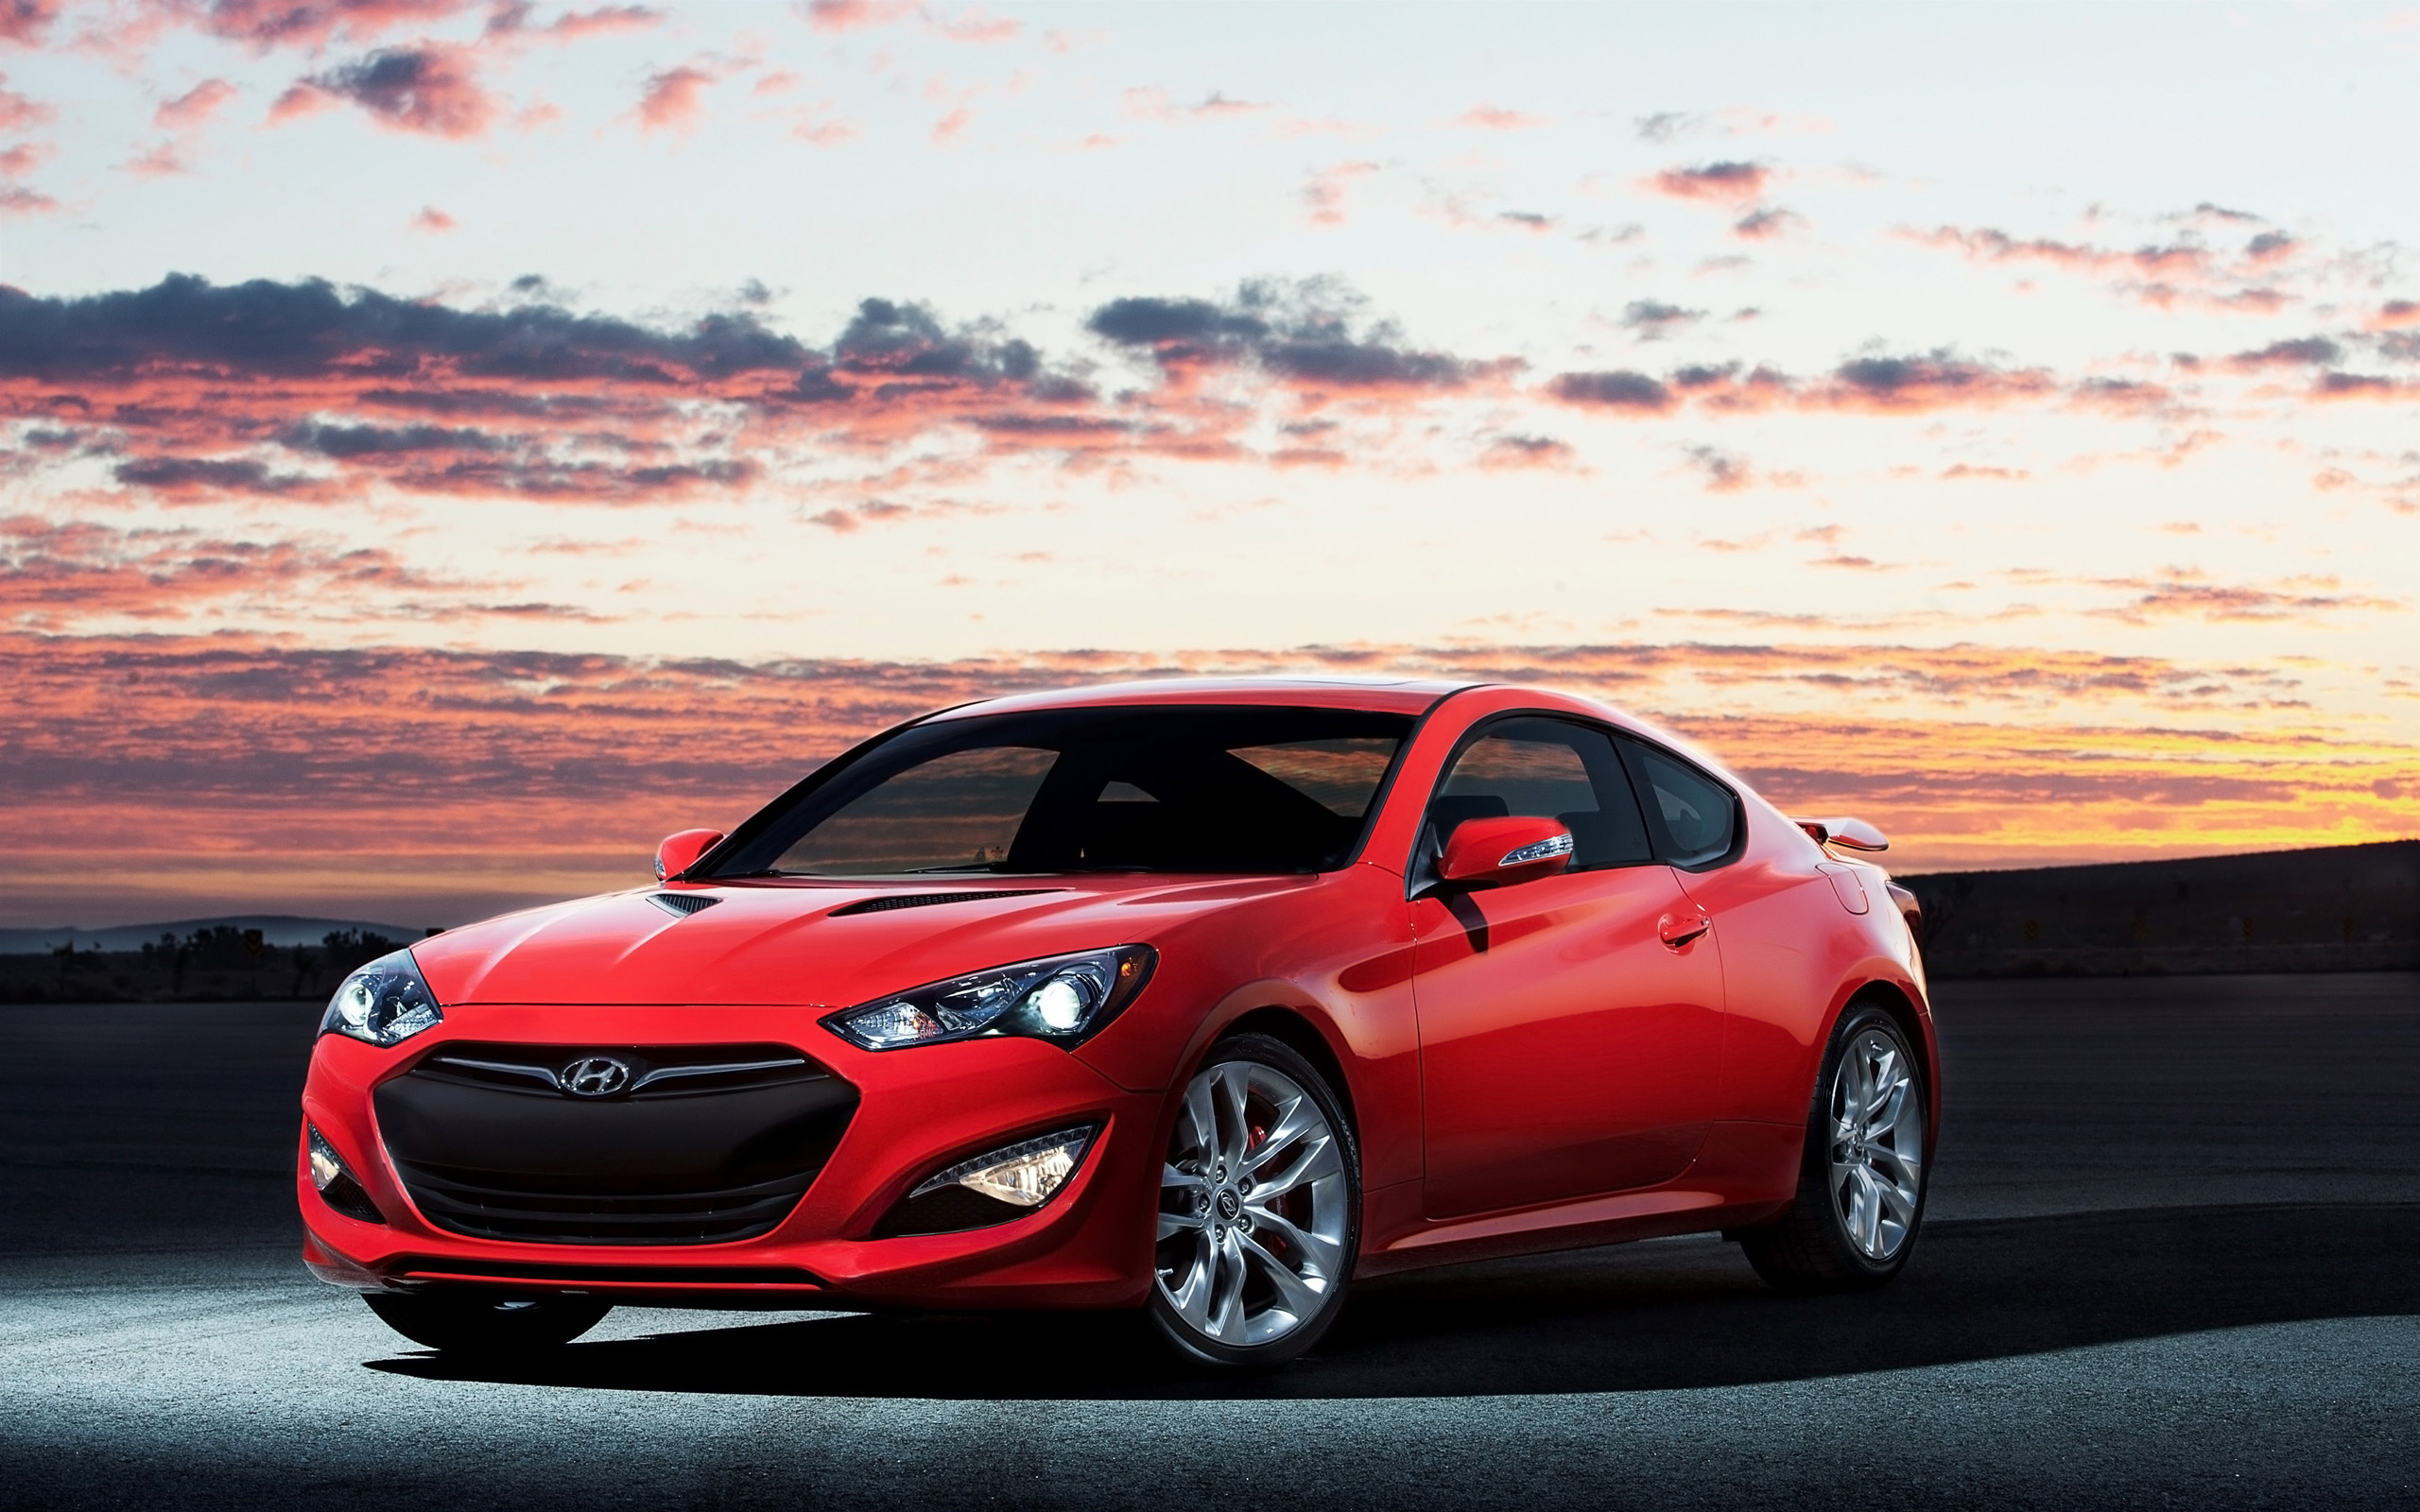 hyundai genesis coupe - photo #3